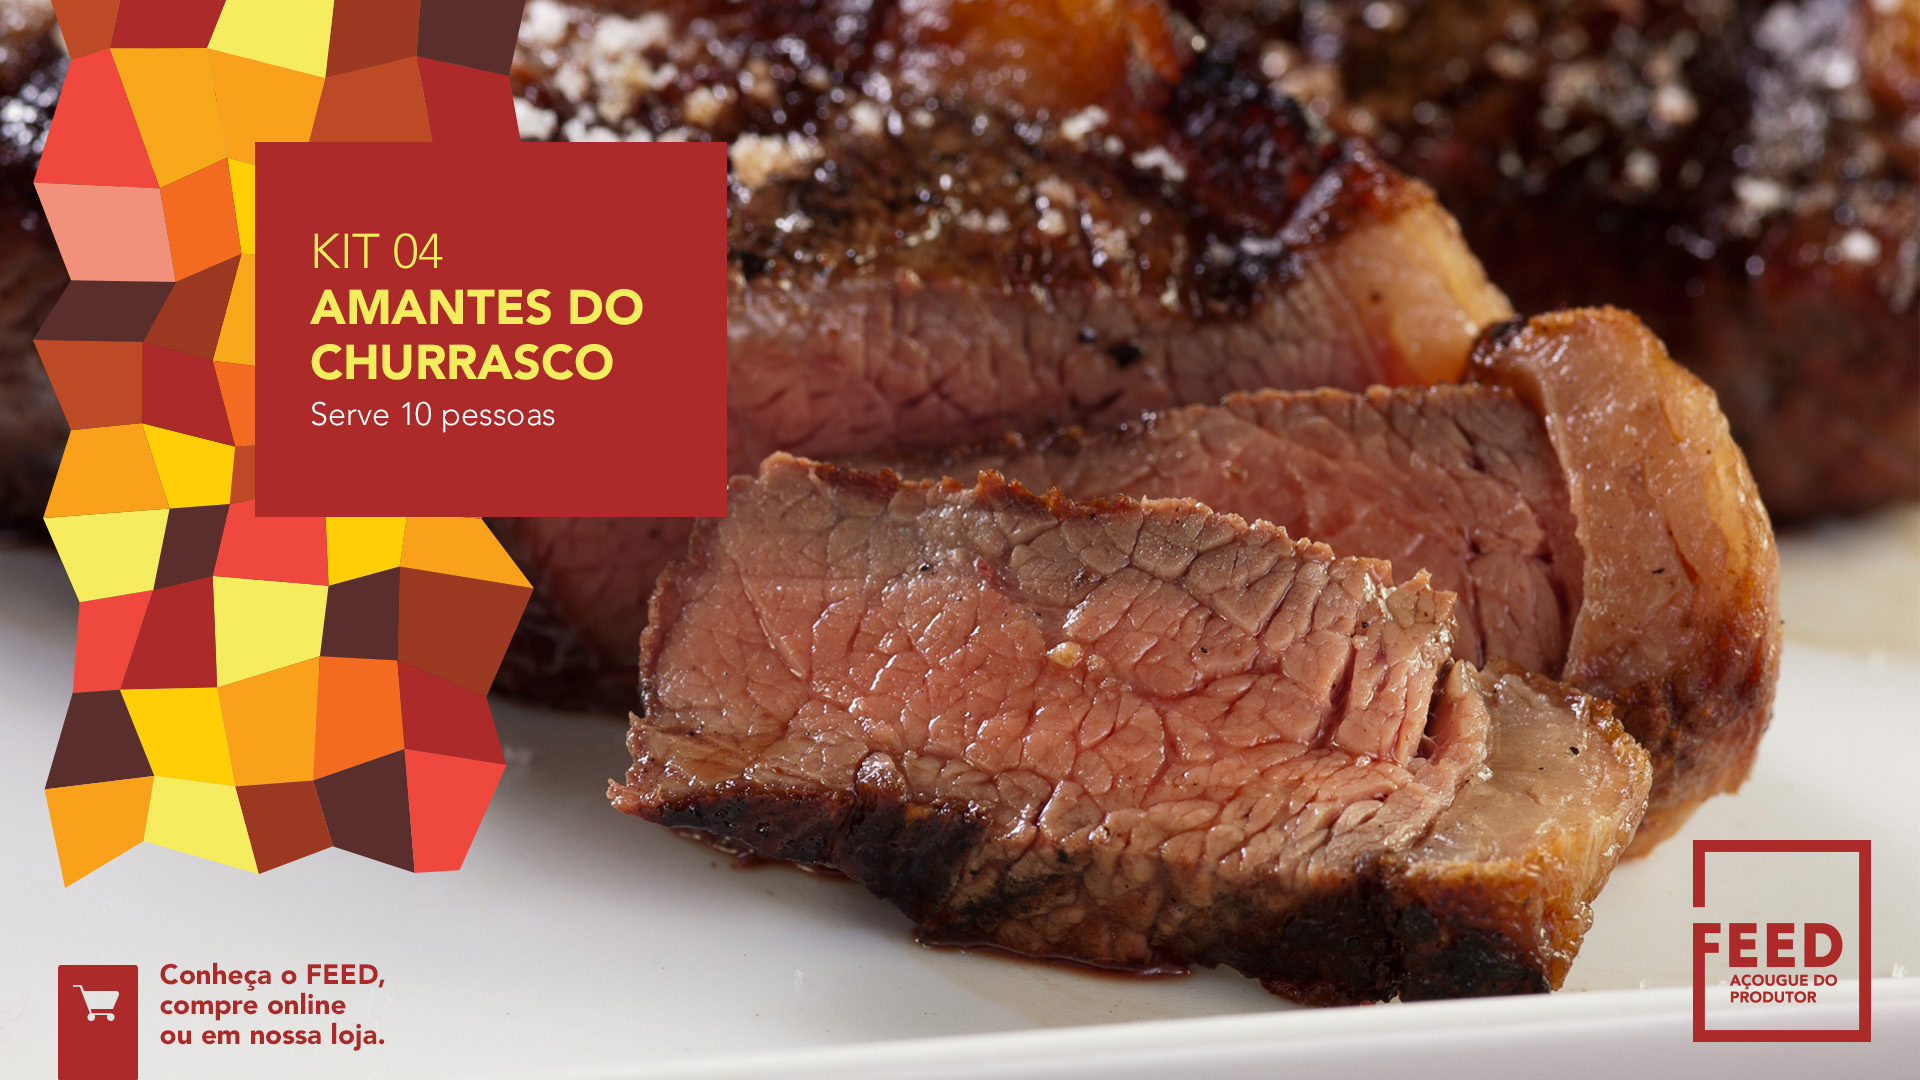 Kit - Amantes de churrasco